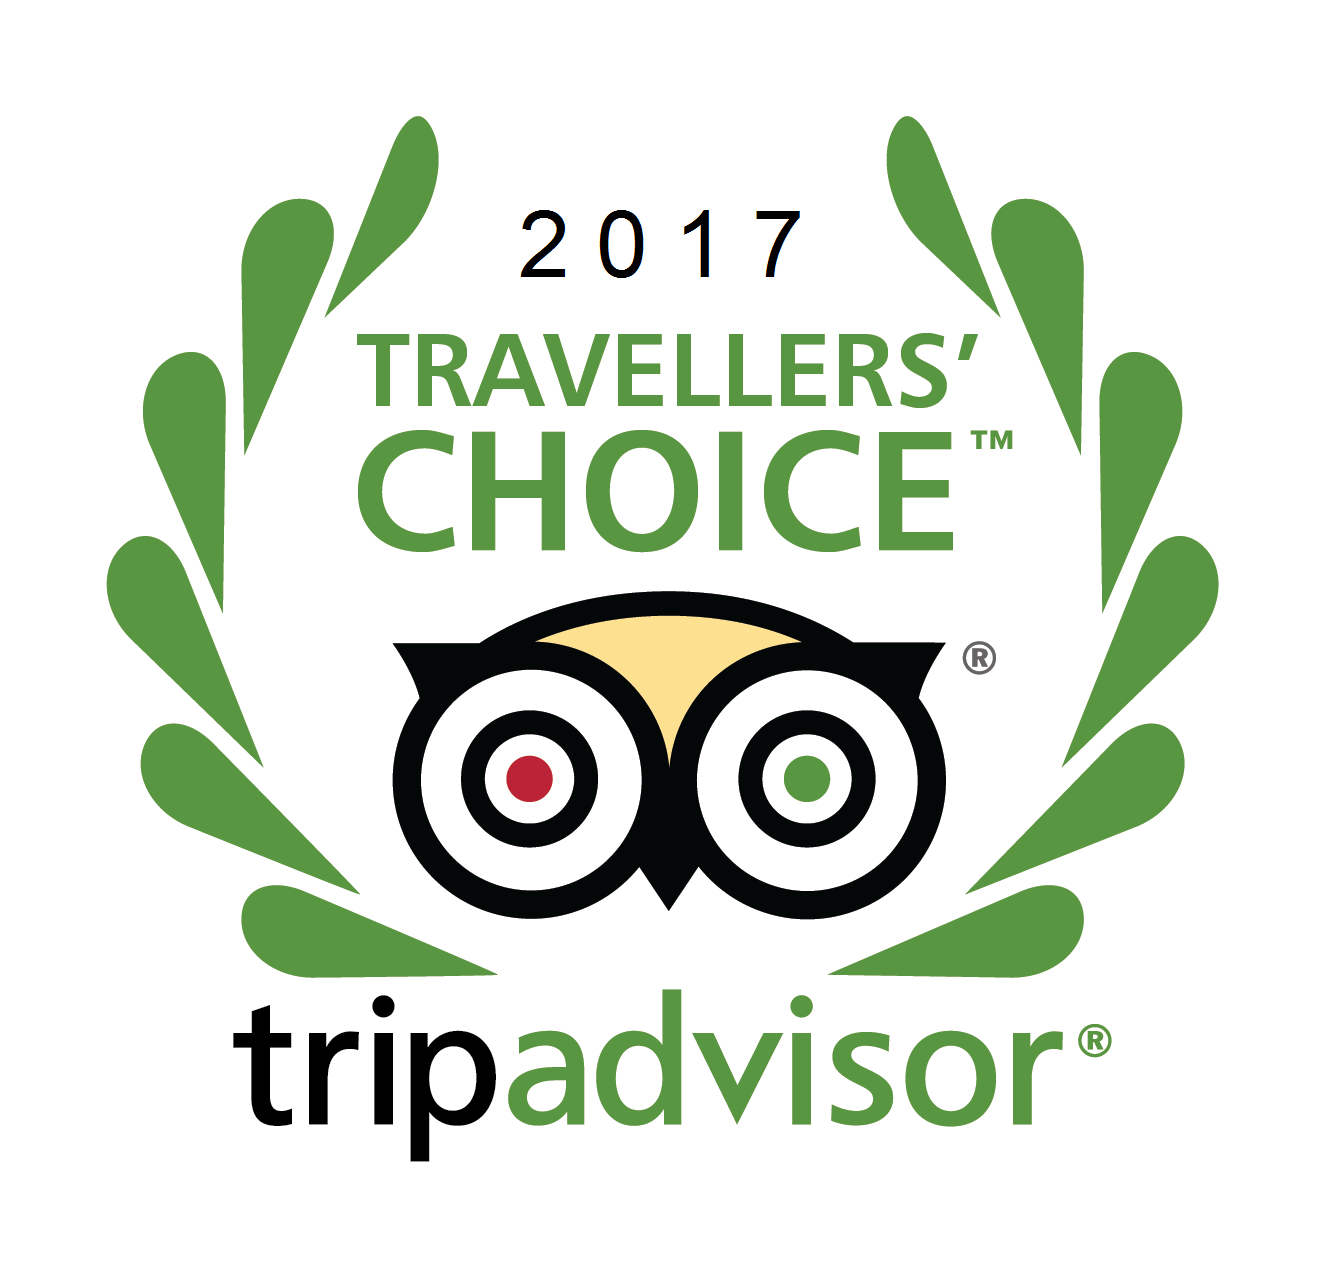 Travelers' Choice 2017